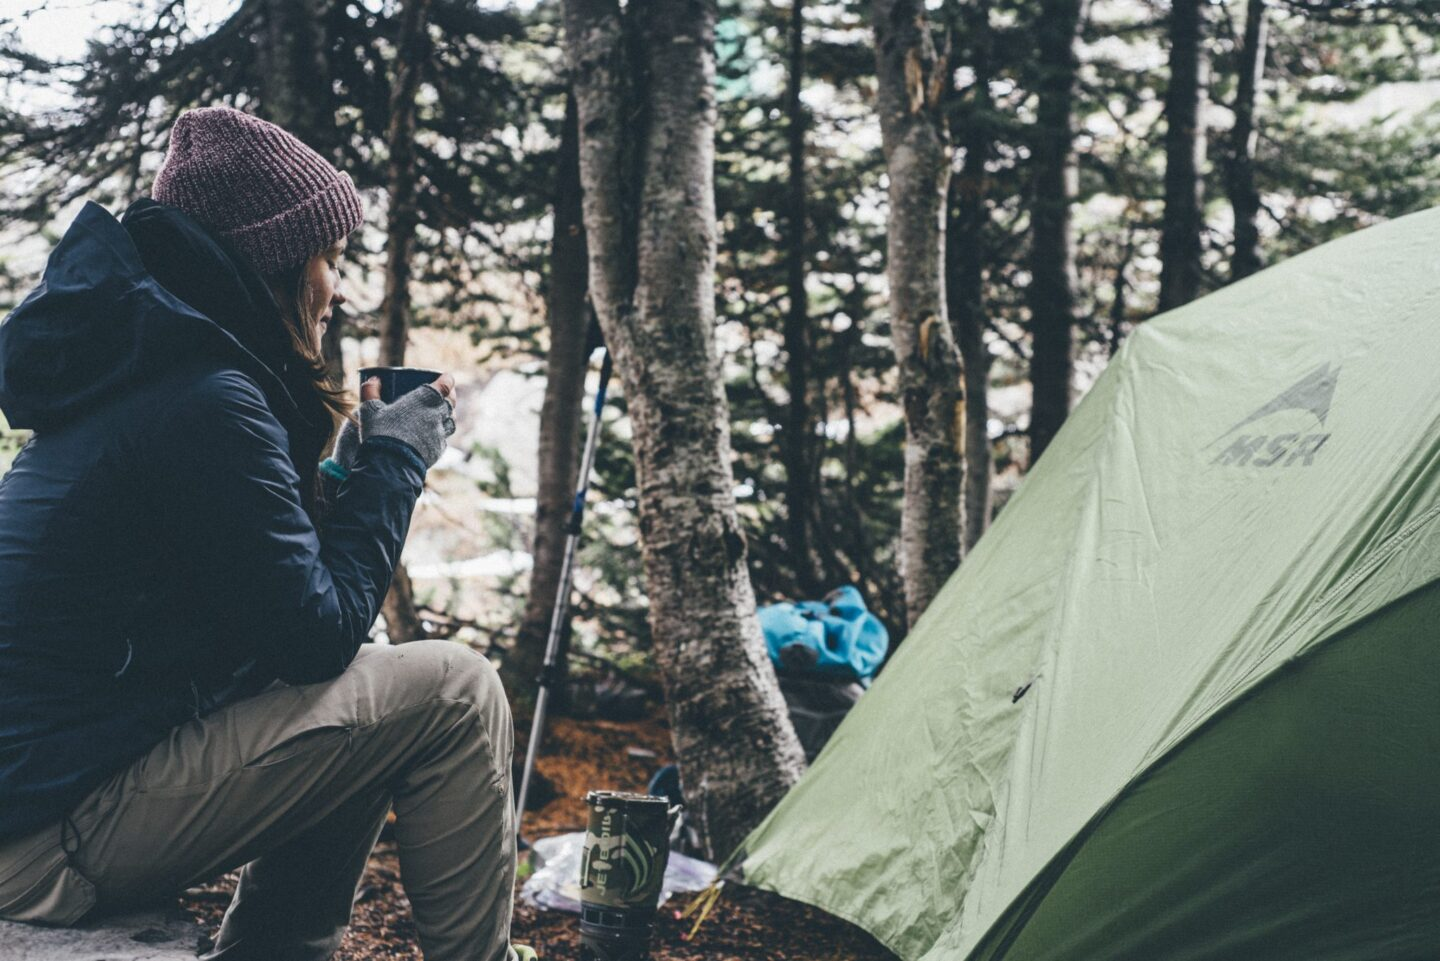 Camping 101: The Essential Equipment For A Rural Holiday